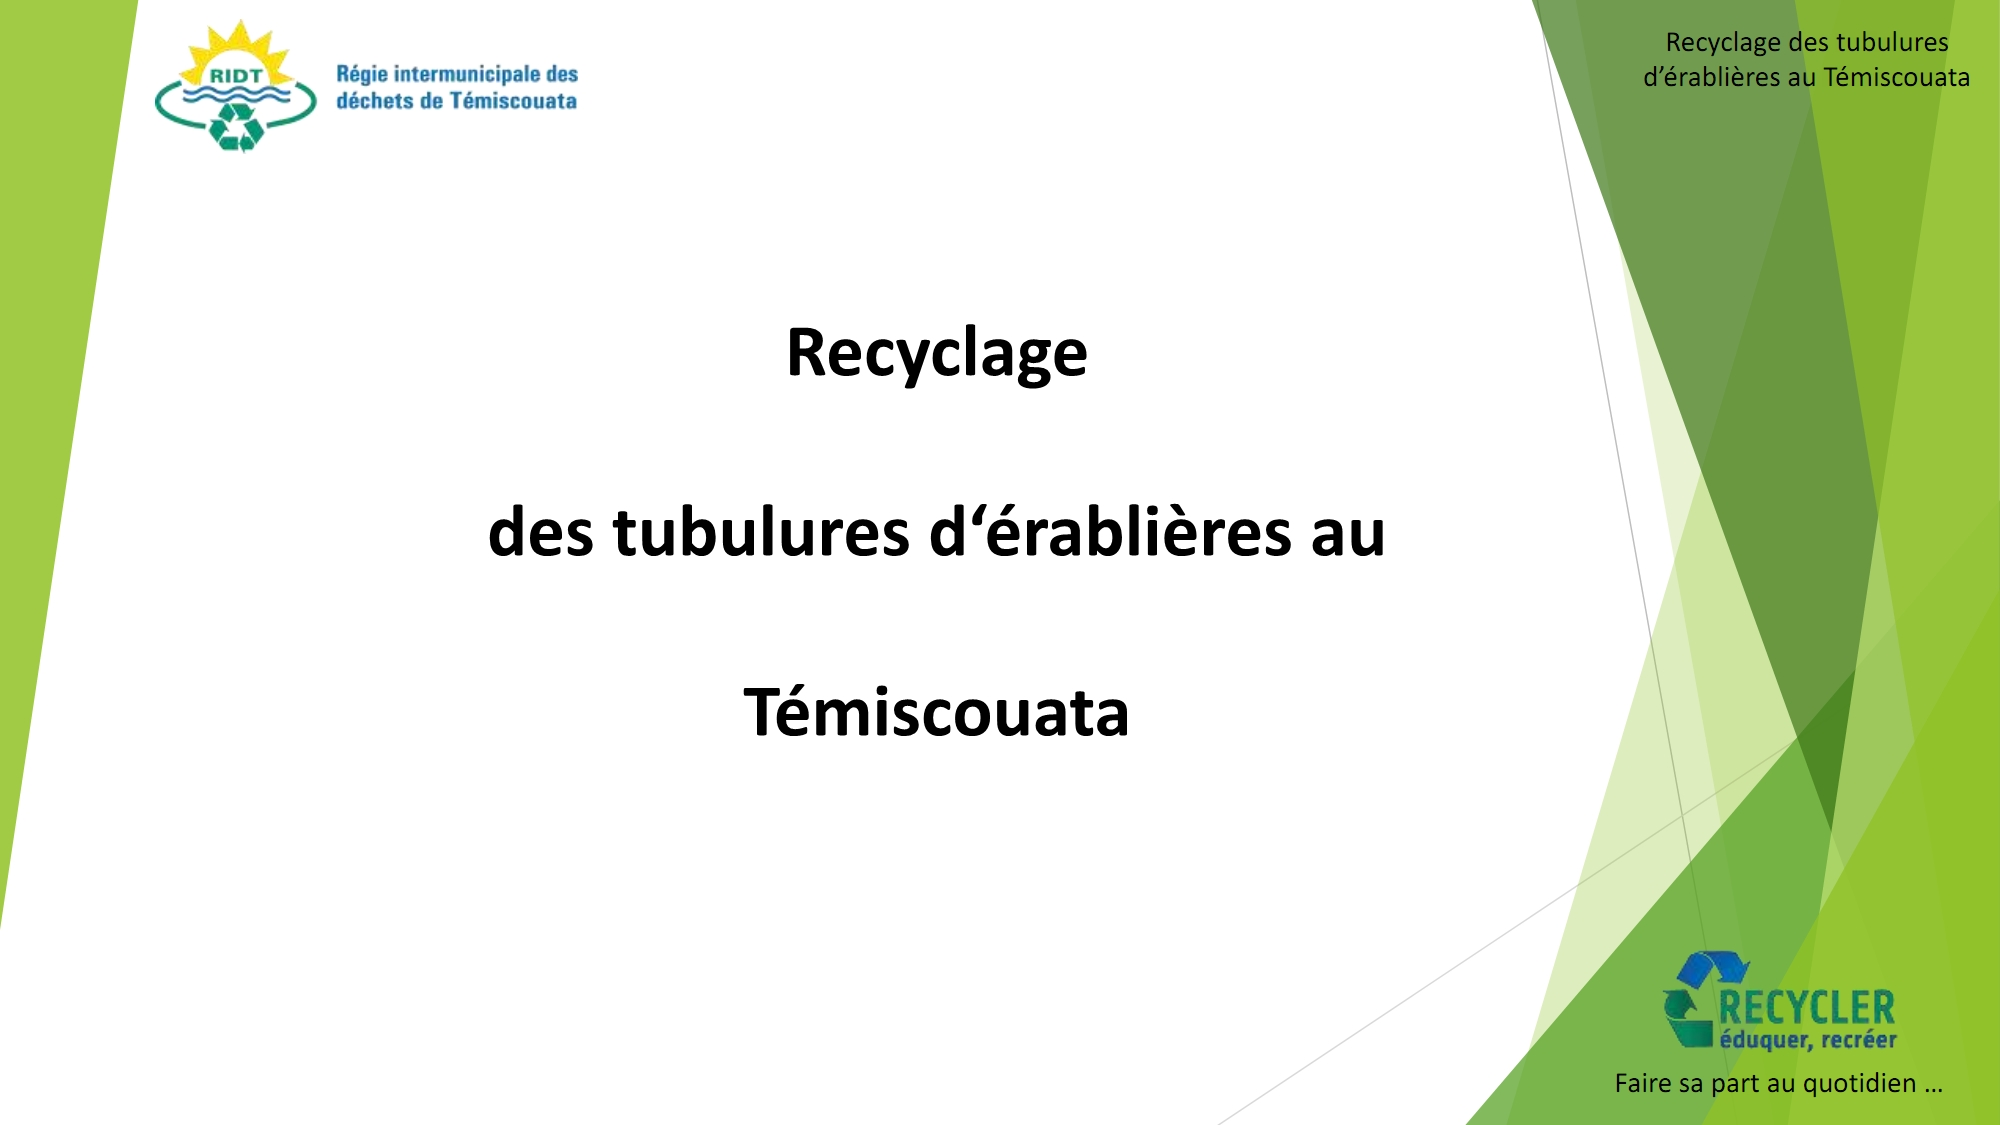 Informations recyclage tubulures 2019